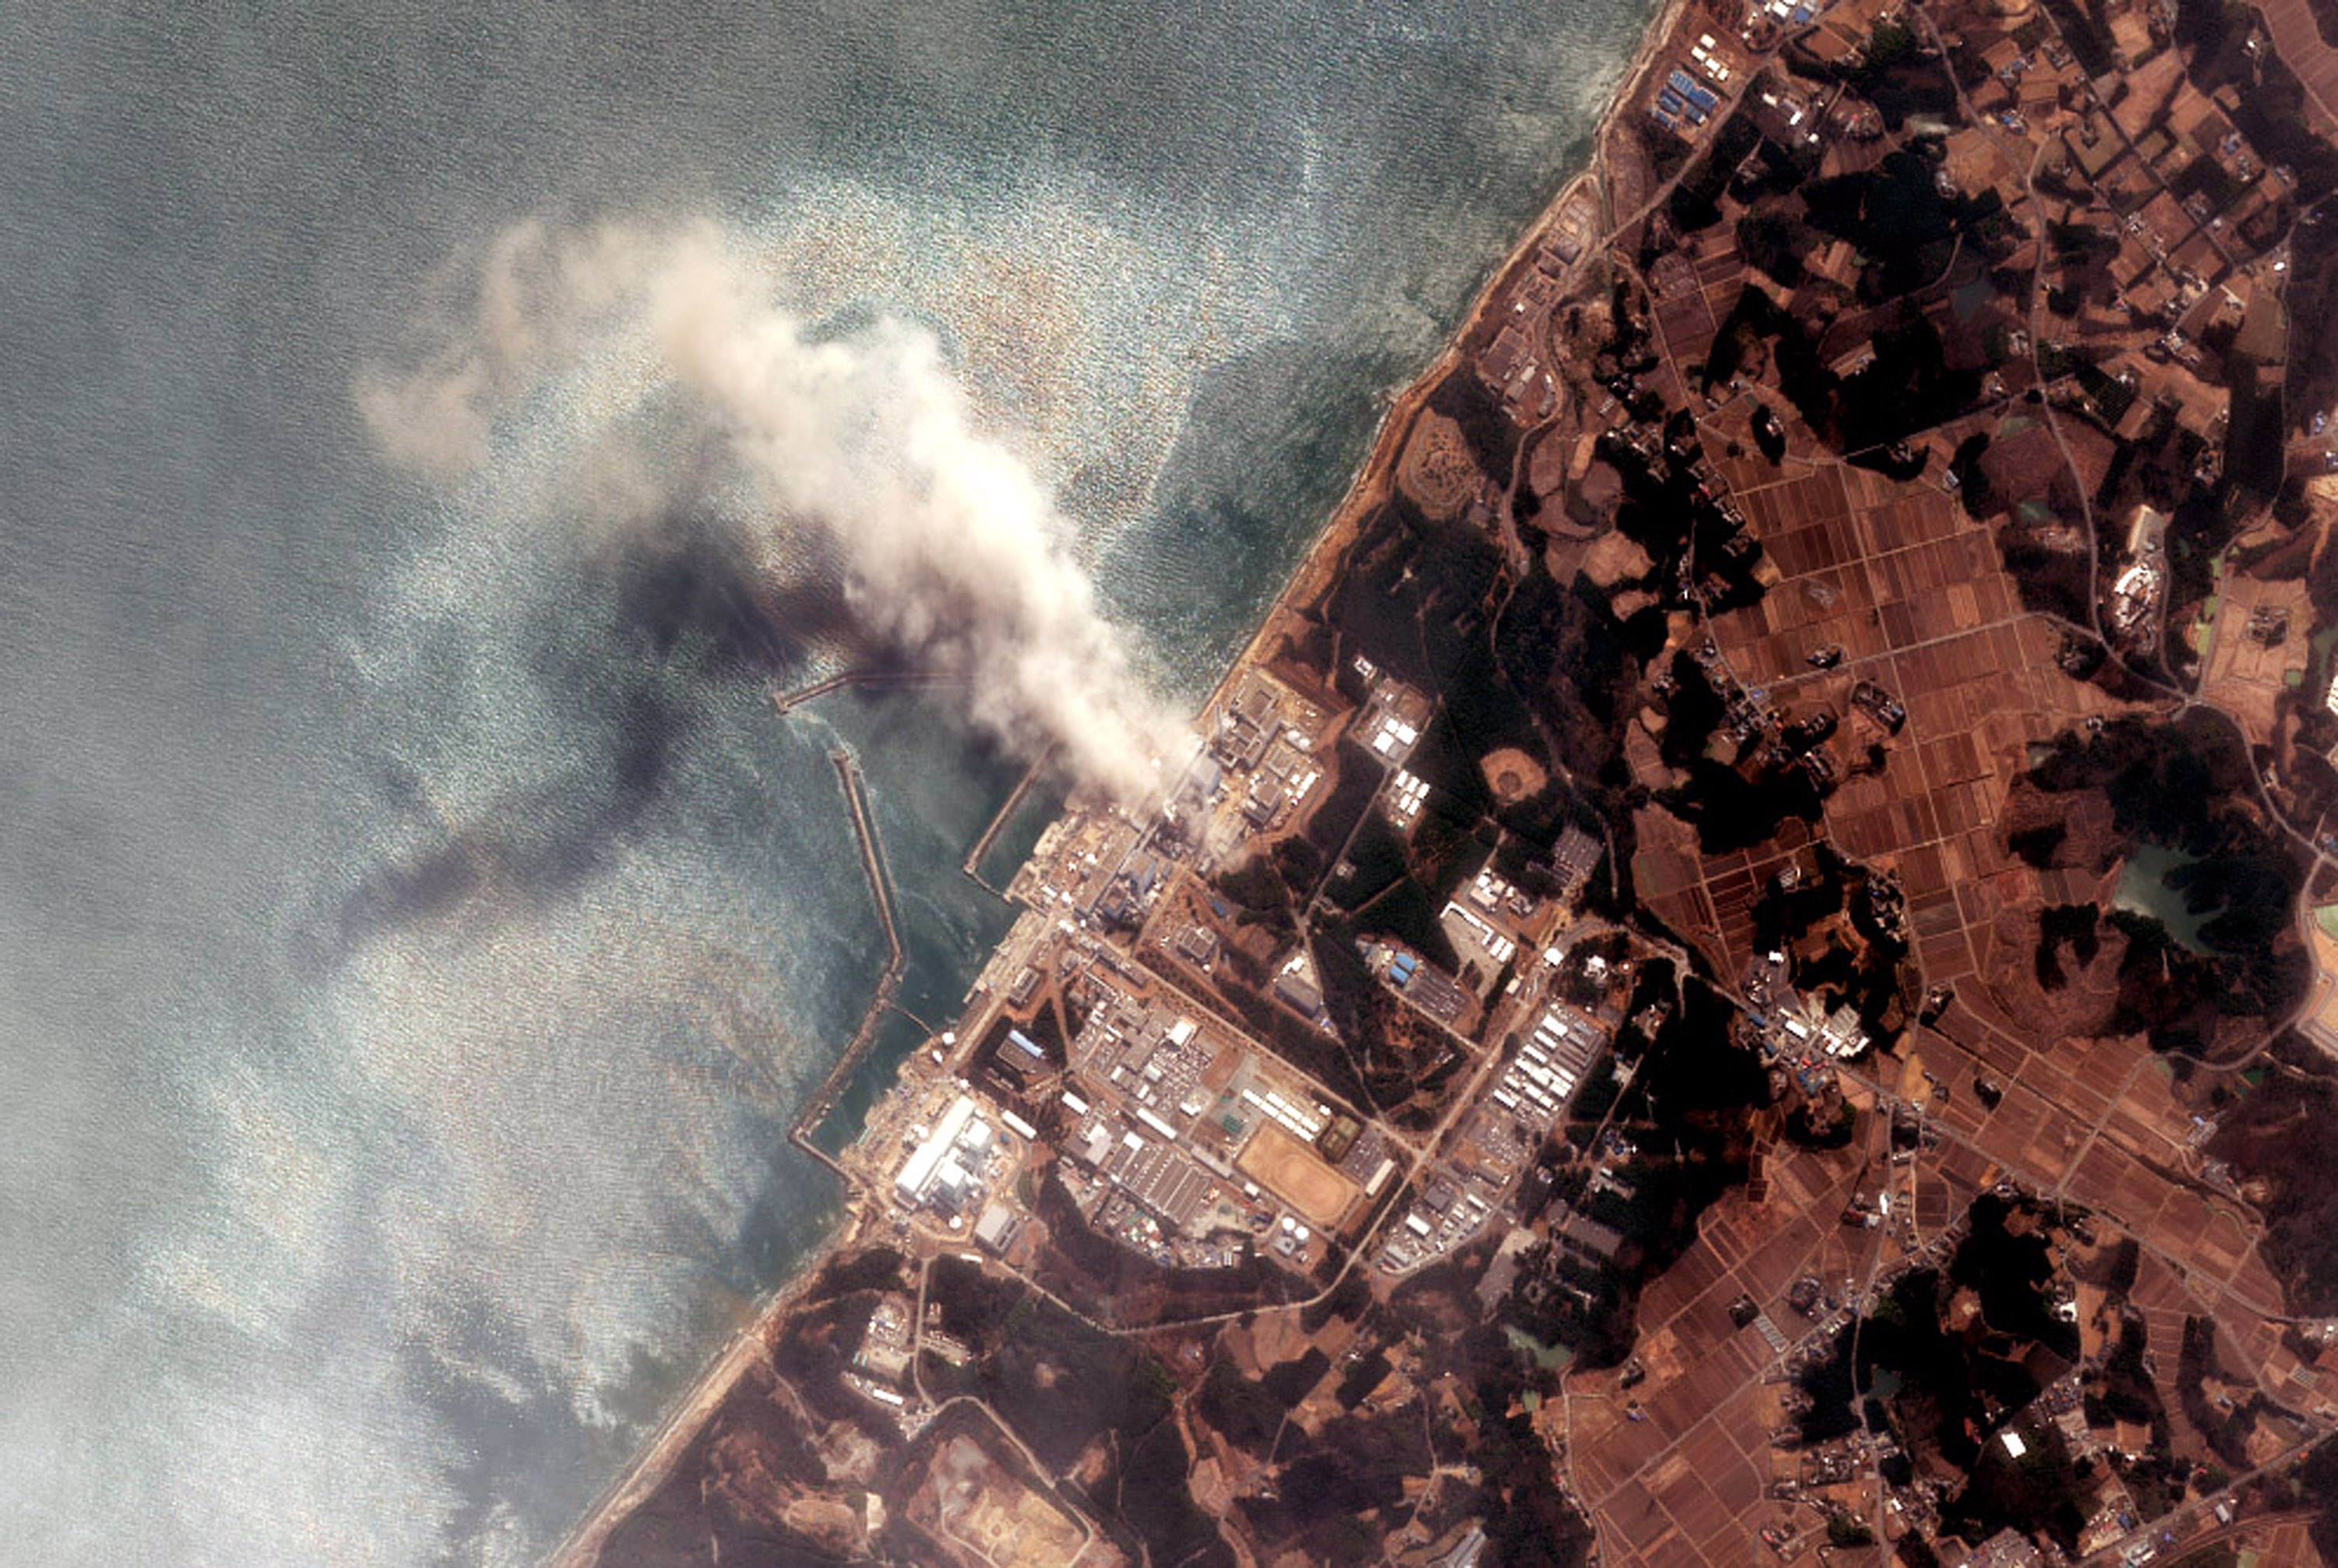 Tens of millions of tons of nuclear wastewater from Fukushima might be dumped into the ocean 9XF5RStDzquL6FyJTCrmeE